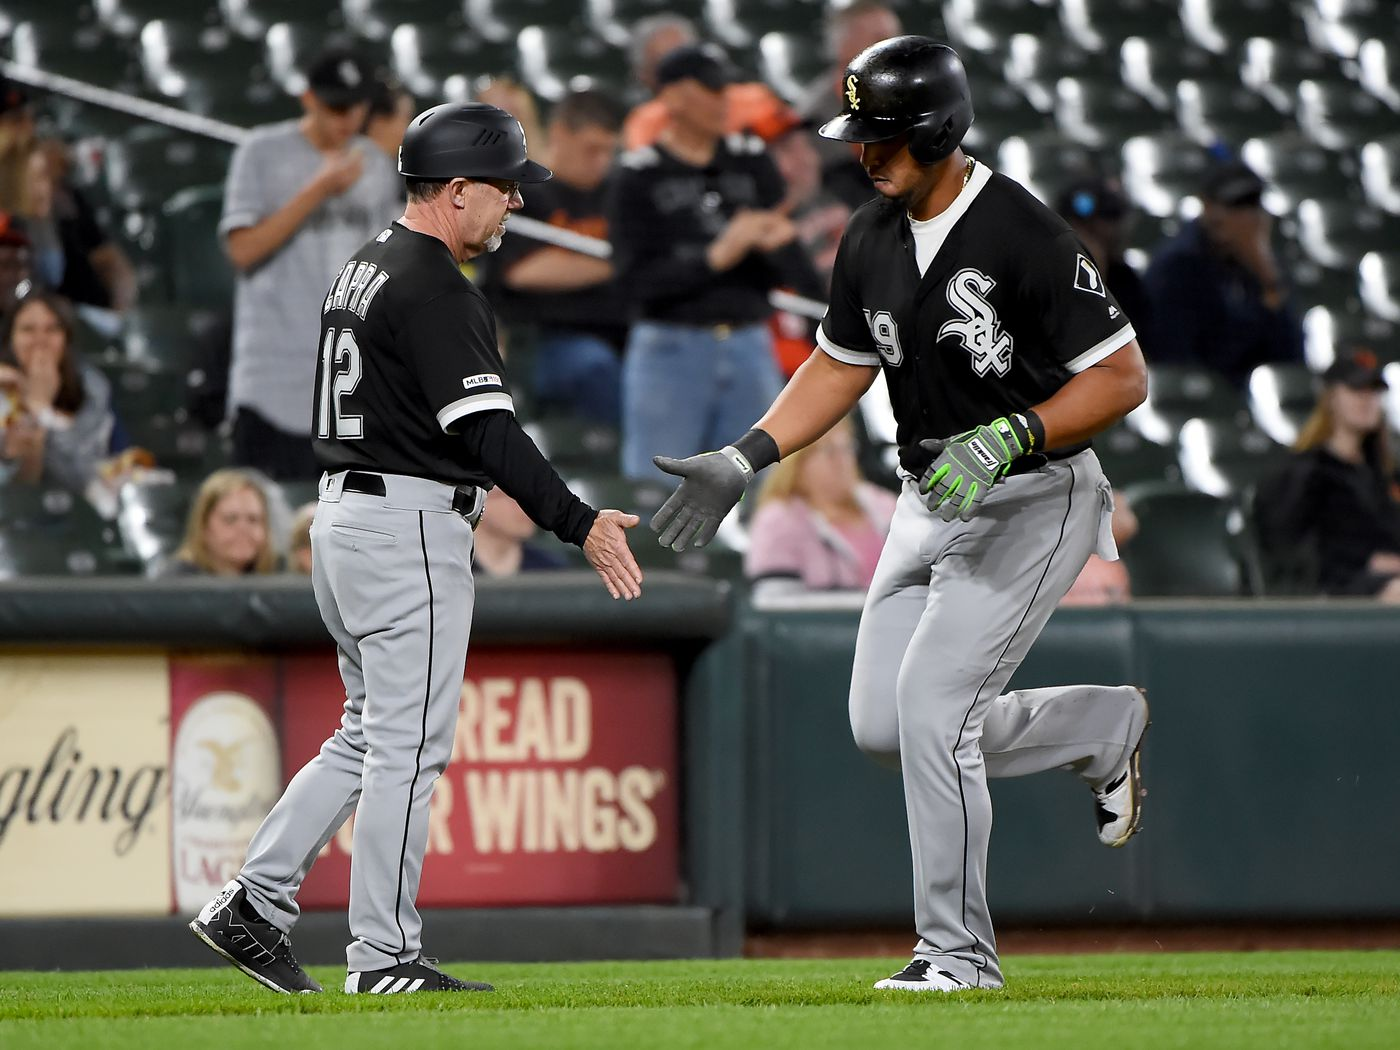 White Sox Coach Nick Capra Has Payback On His Mind Chicago Sun Times